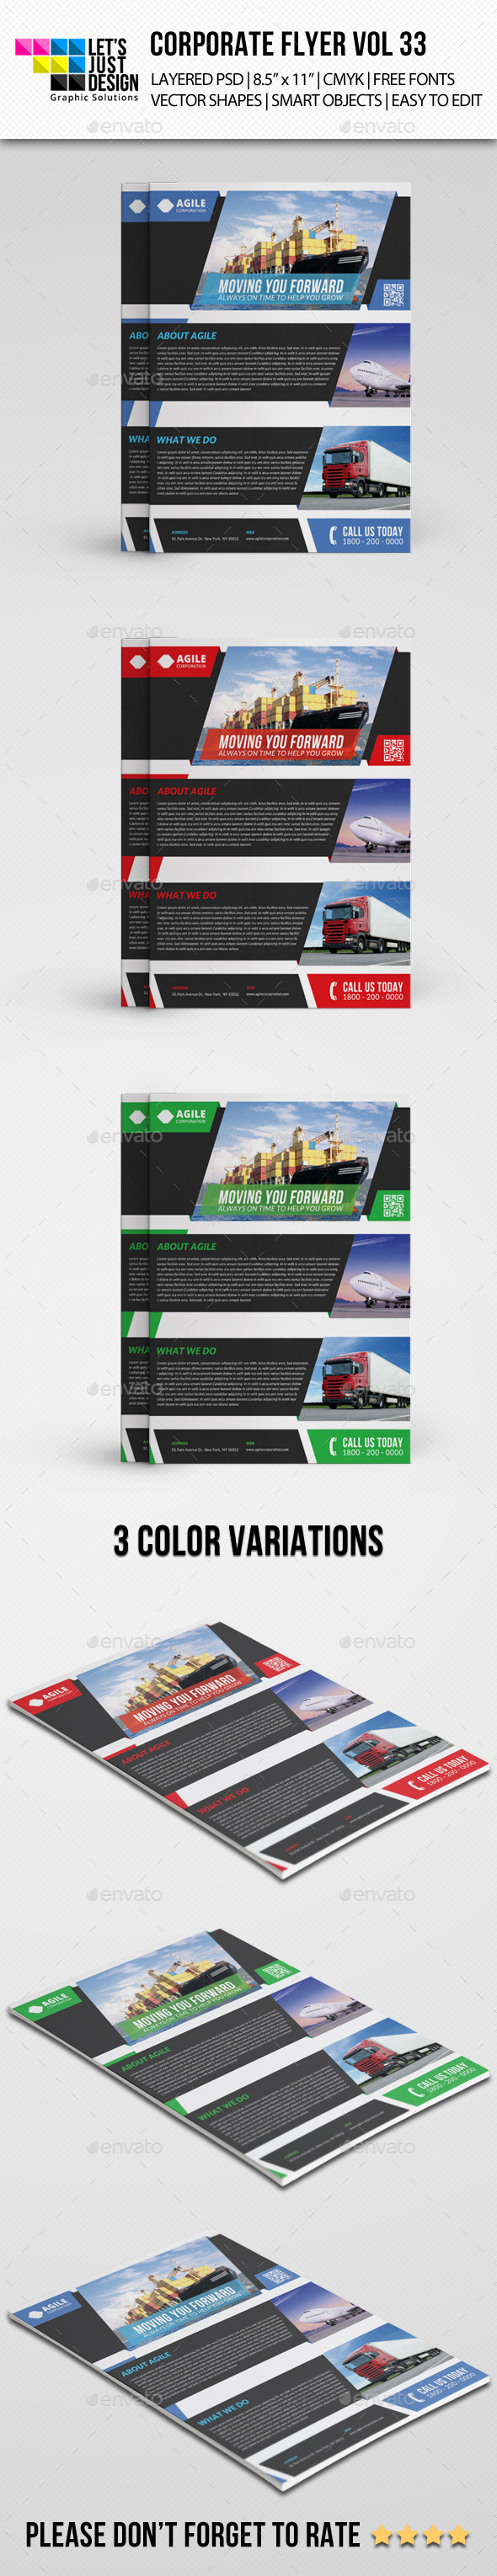 Corporate Flyer Template Vol 33 - Corporate Flyers